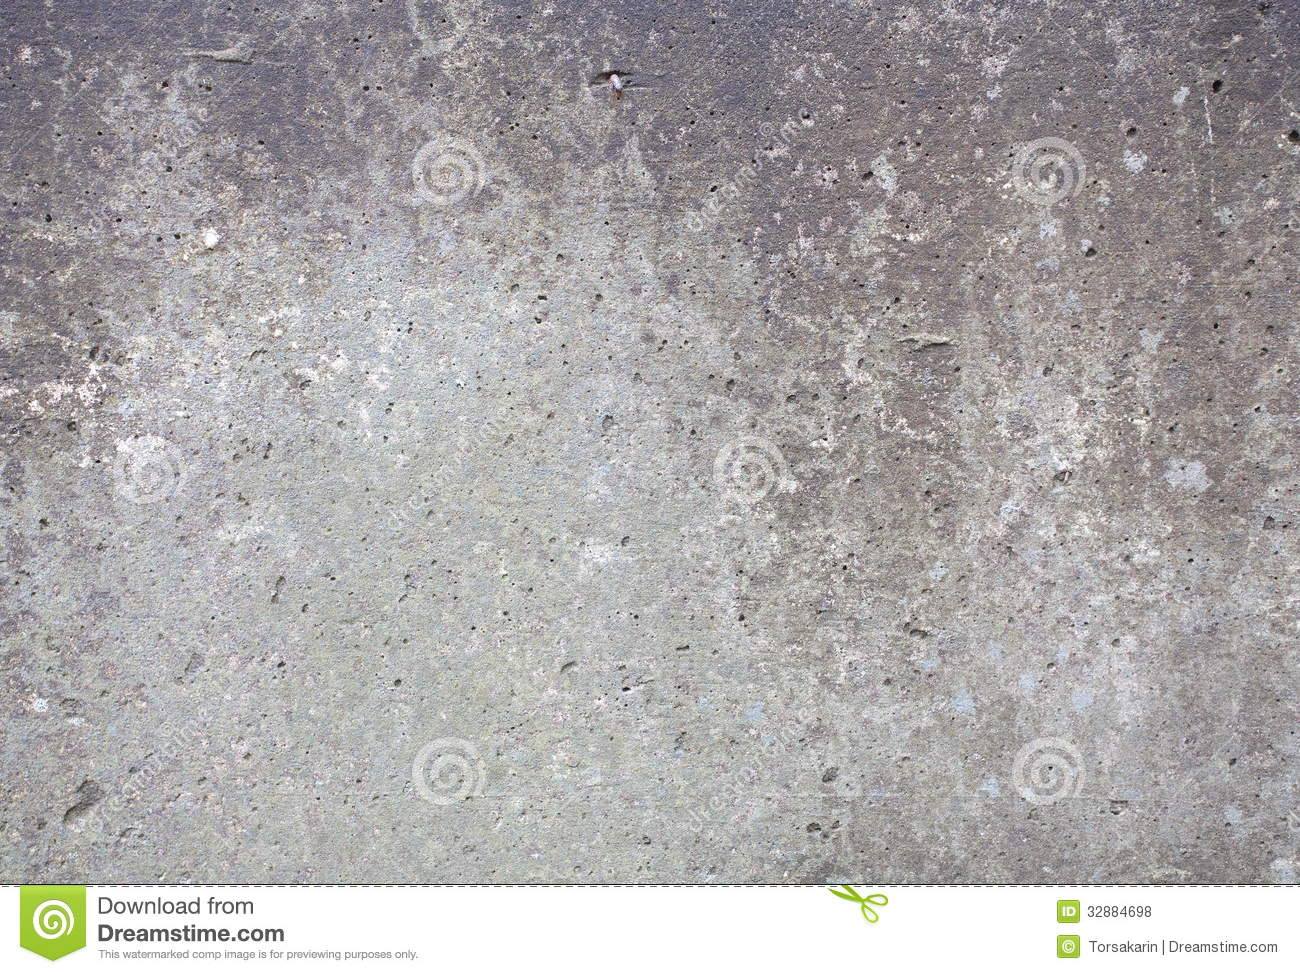 Jpg Texture Background Free Stock Photos Download 105 545: Simple Concrete Wall Background With Texture Stock Photo